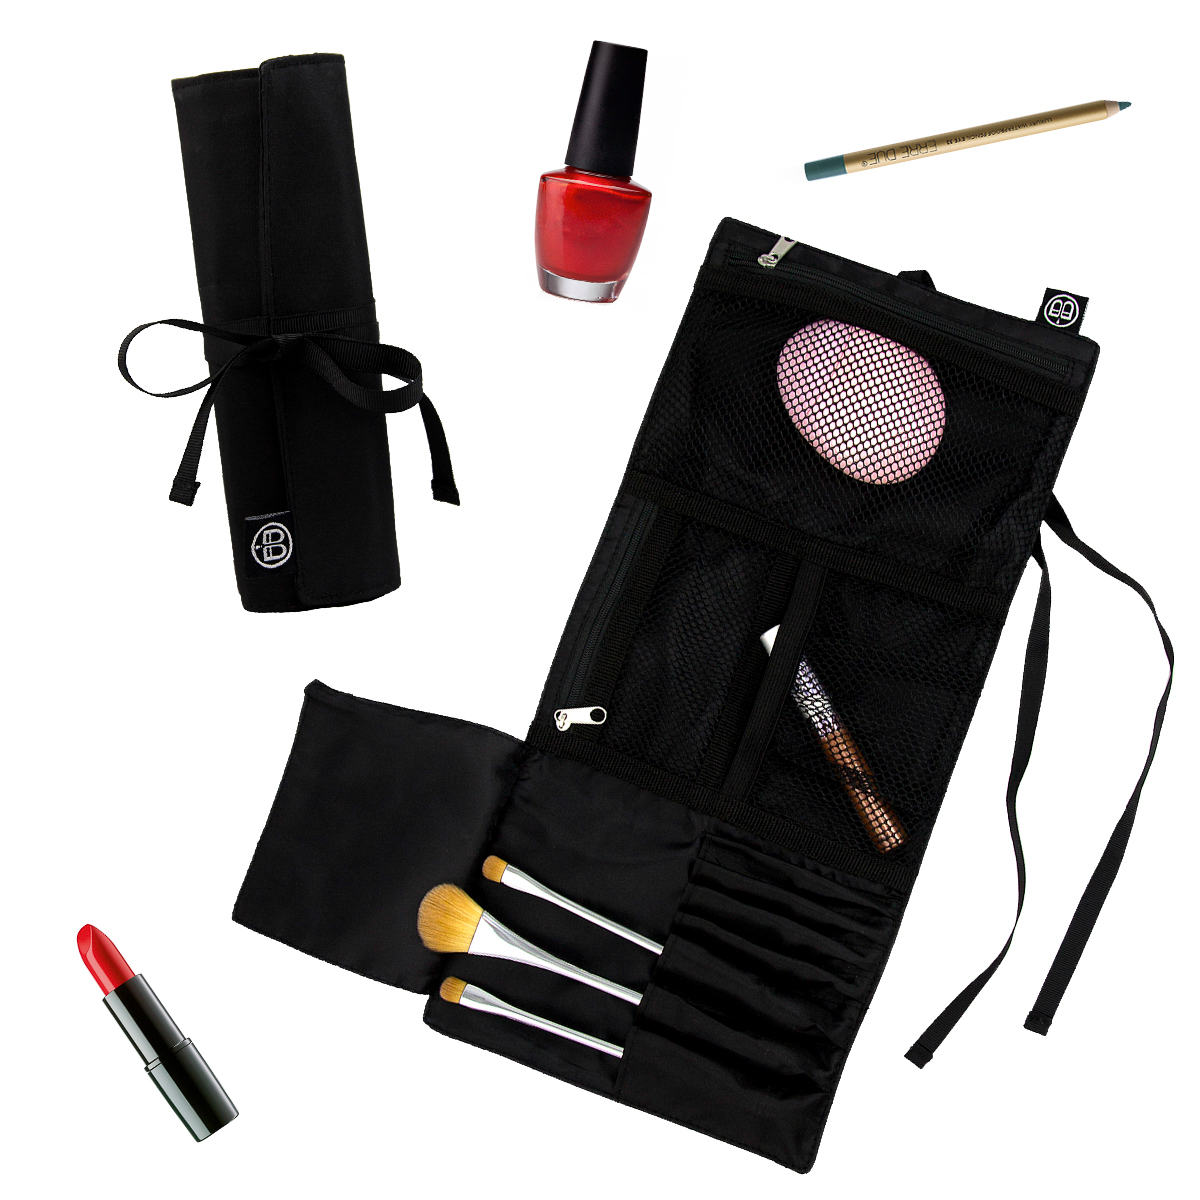 Beyond A Bag Cosmetic TriFold Roll BB291 Black Cosmetic Purse